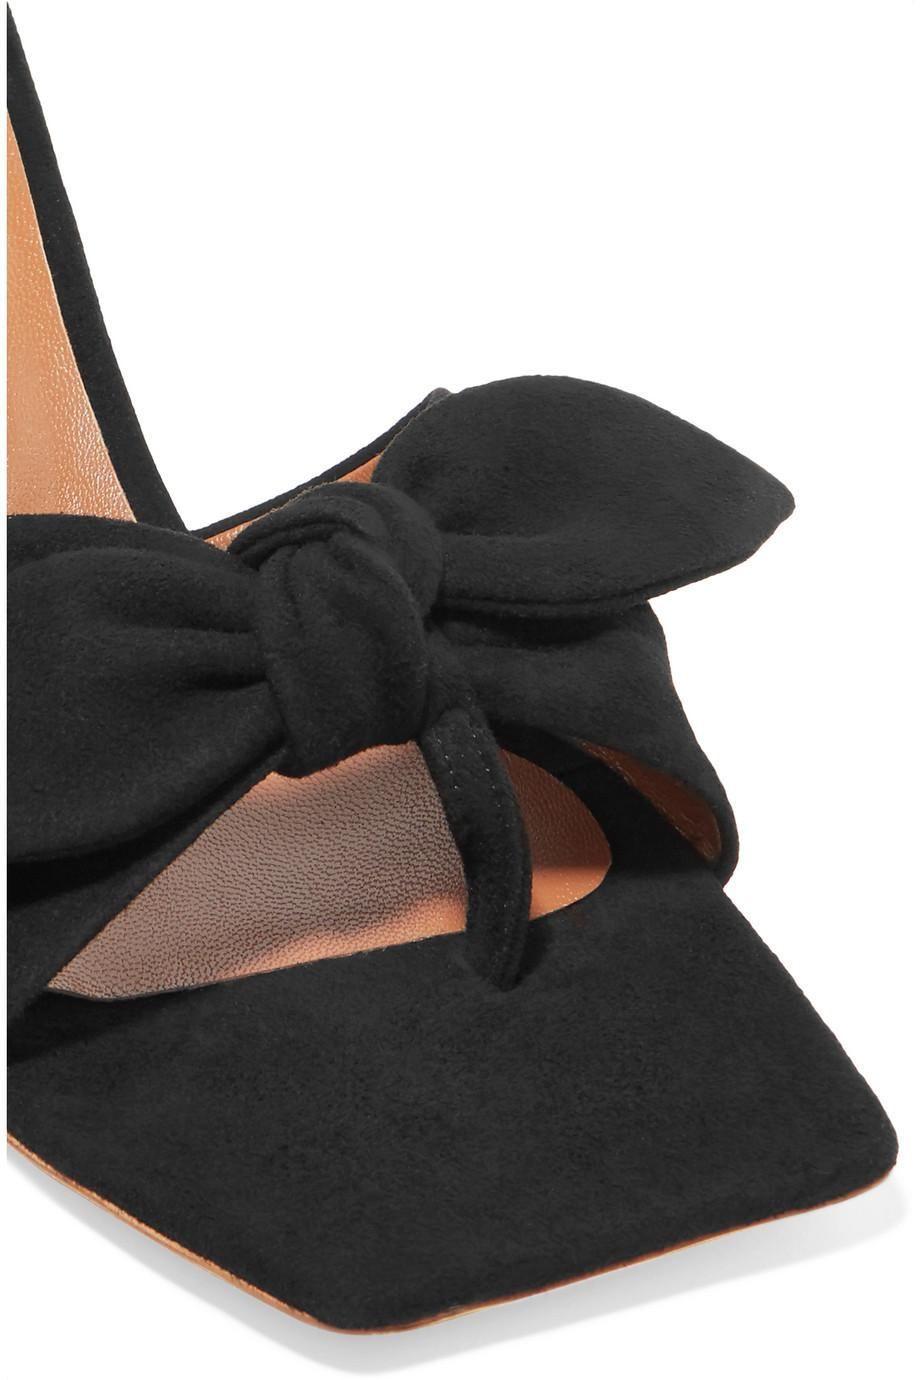 REJINA PYO Lottie Bow-embellished Suede Mules Outlet Looking For Outlet Locations Cheap Price Discount Sale Online uYryXSx